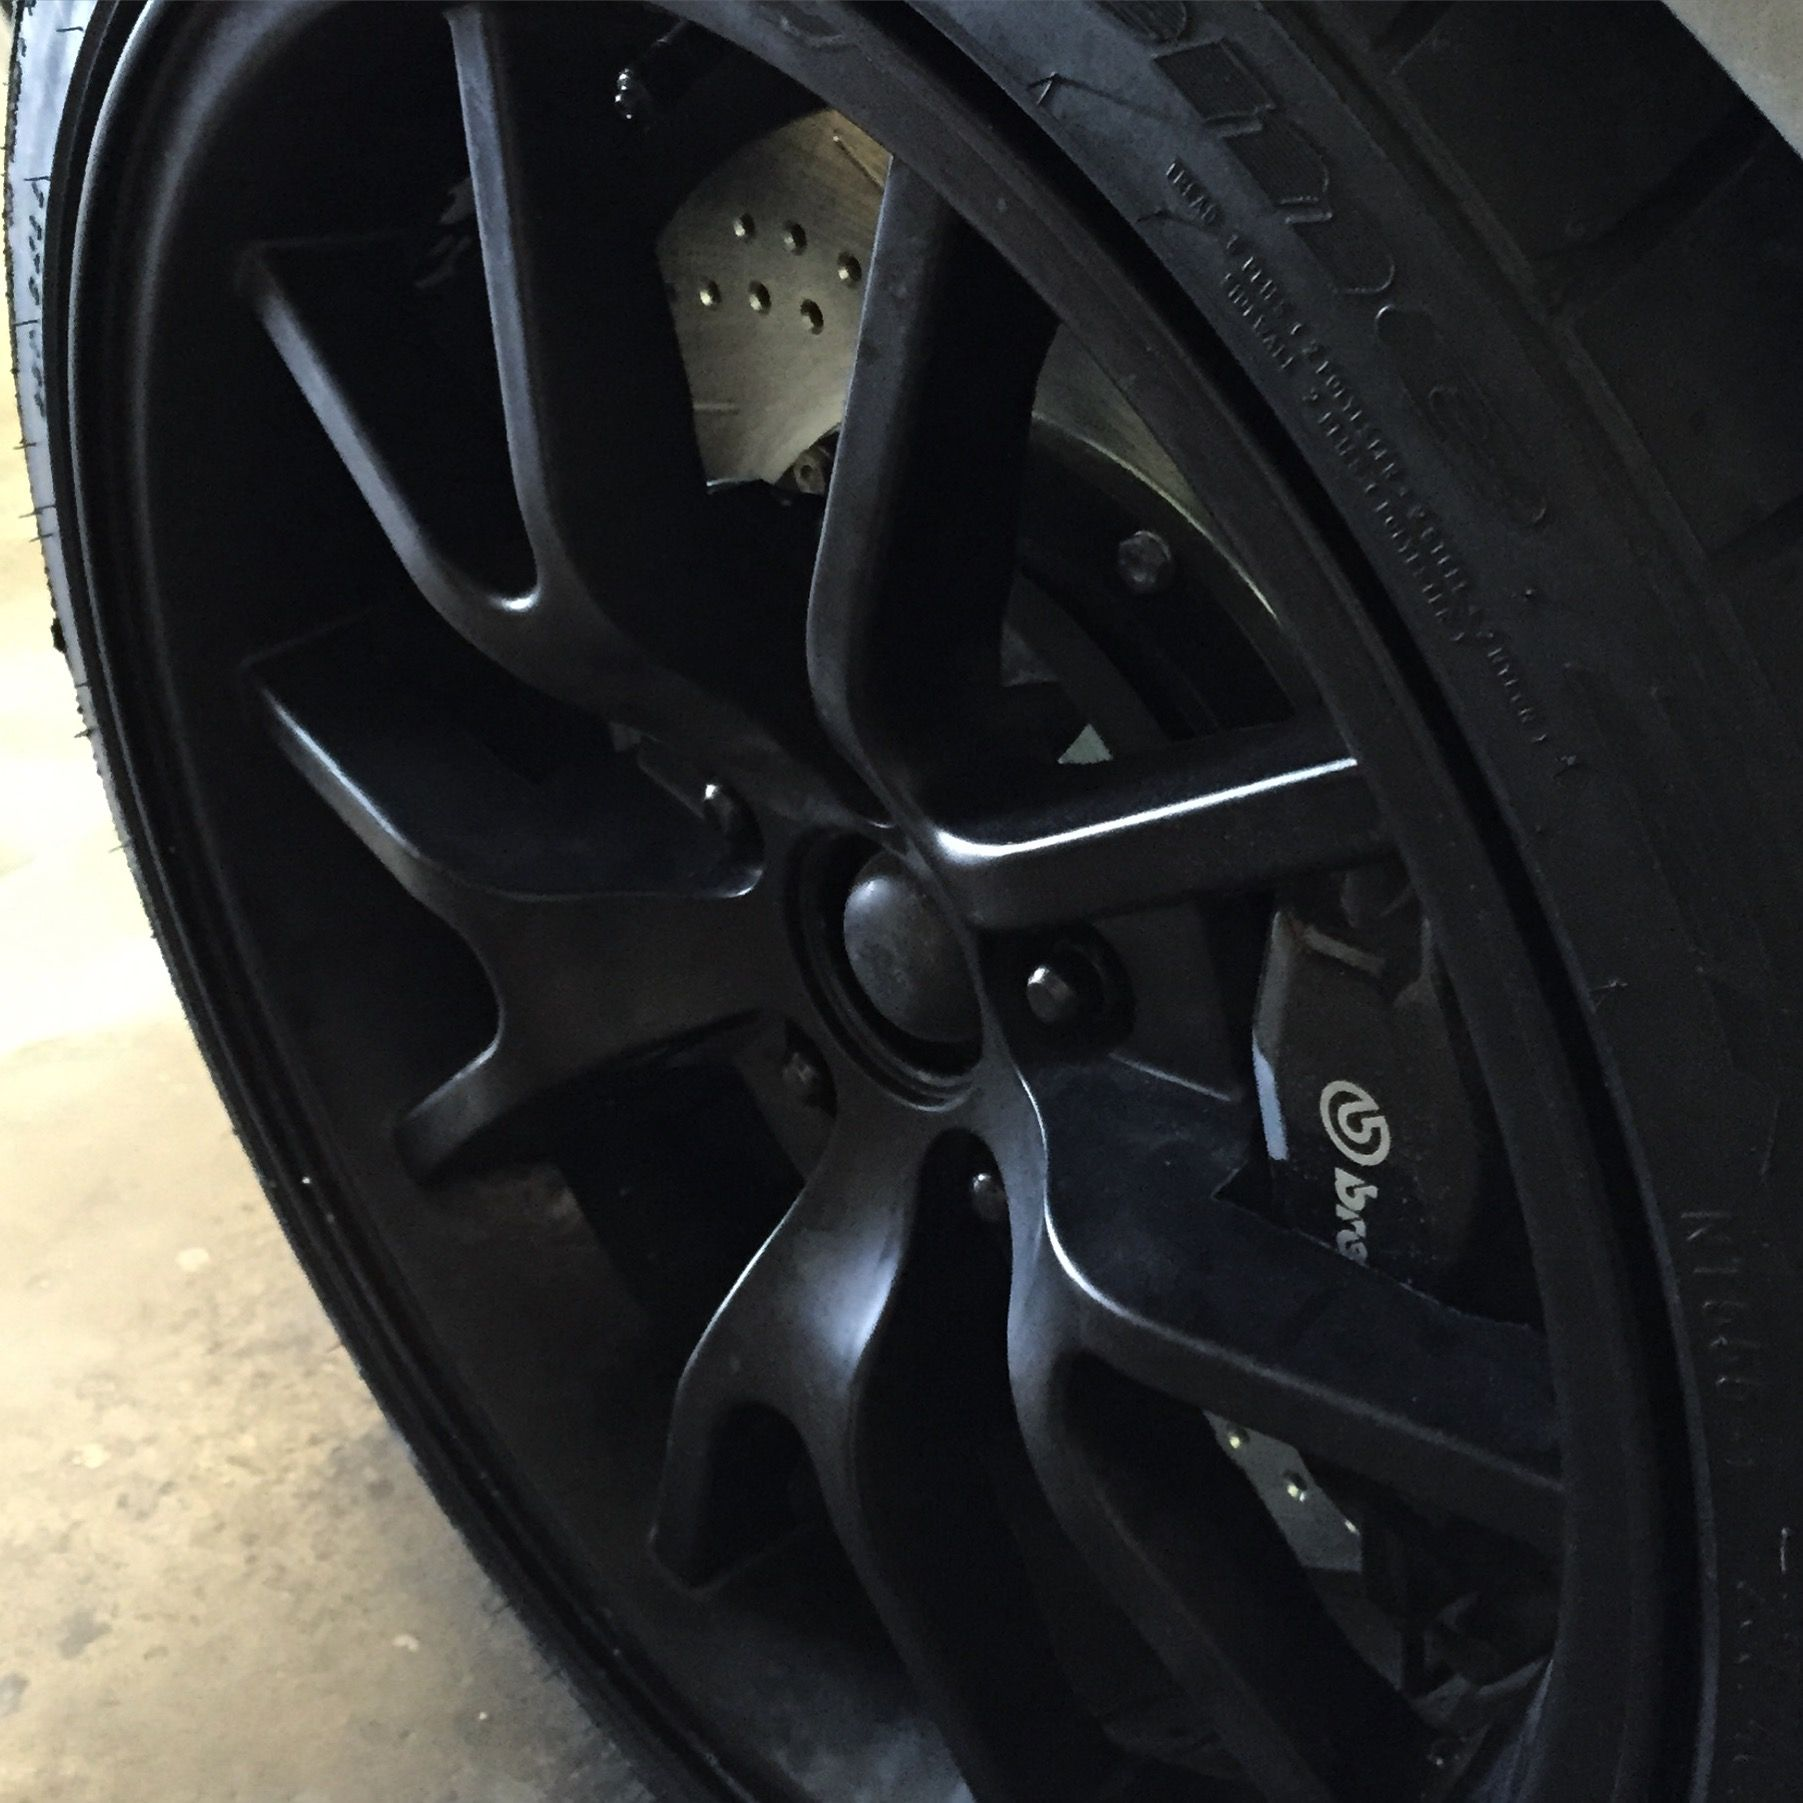 """Brembo calipers, Baer 14"""" cross drilled and slotted rotors.  World class stopping power for a Retro-magined Shelby GT500R"""